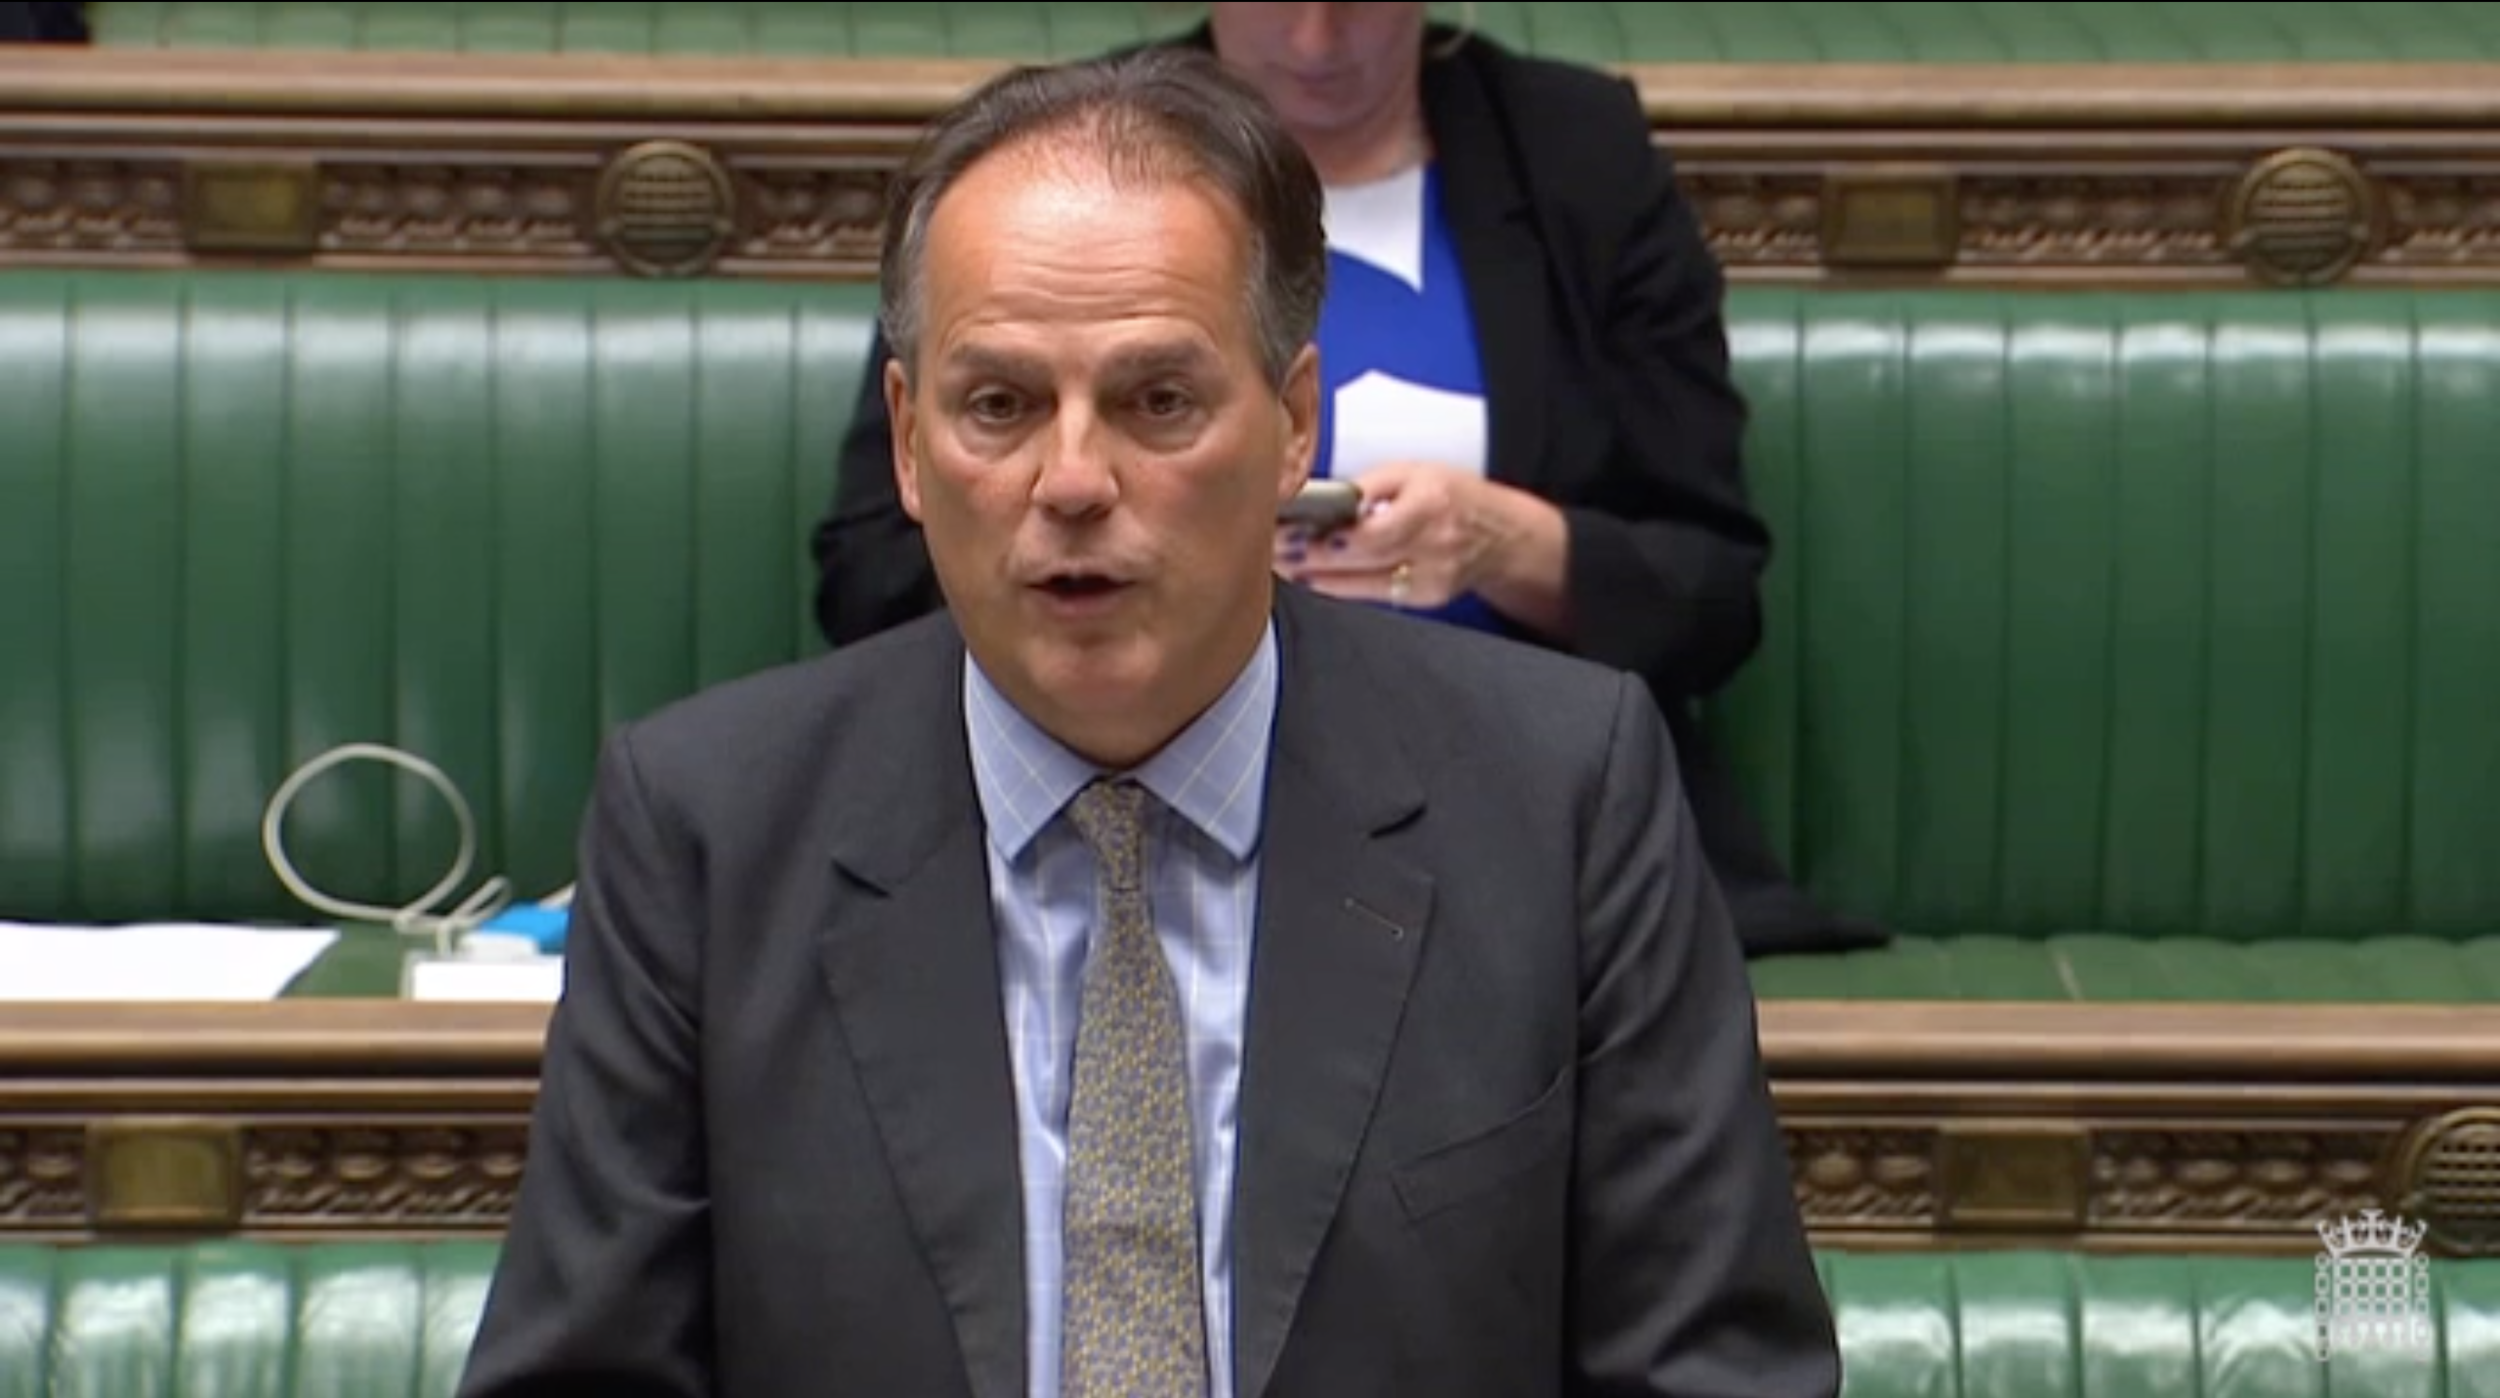 Mark Field, Minister for Asia, answering questions raised during Urgent Question on Hong Kong on 18 June 2019